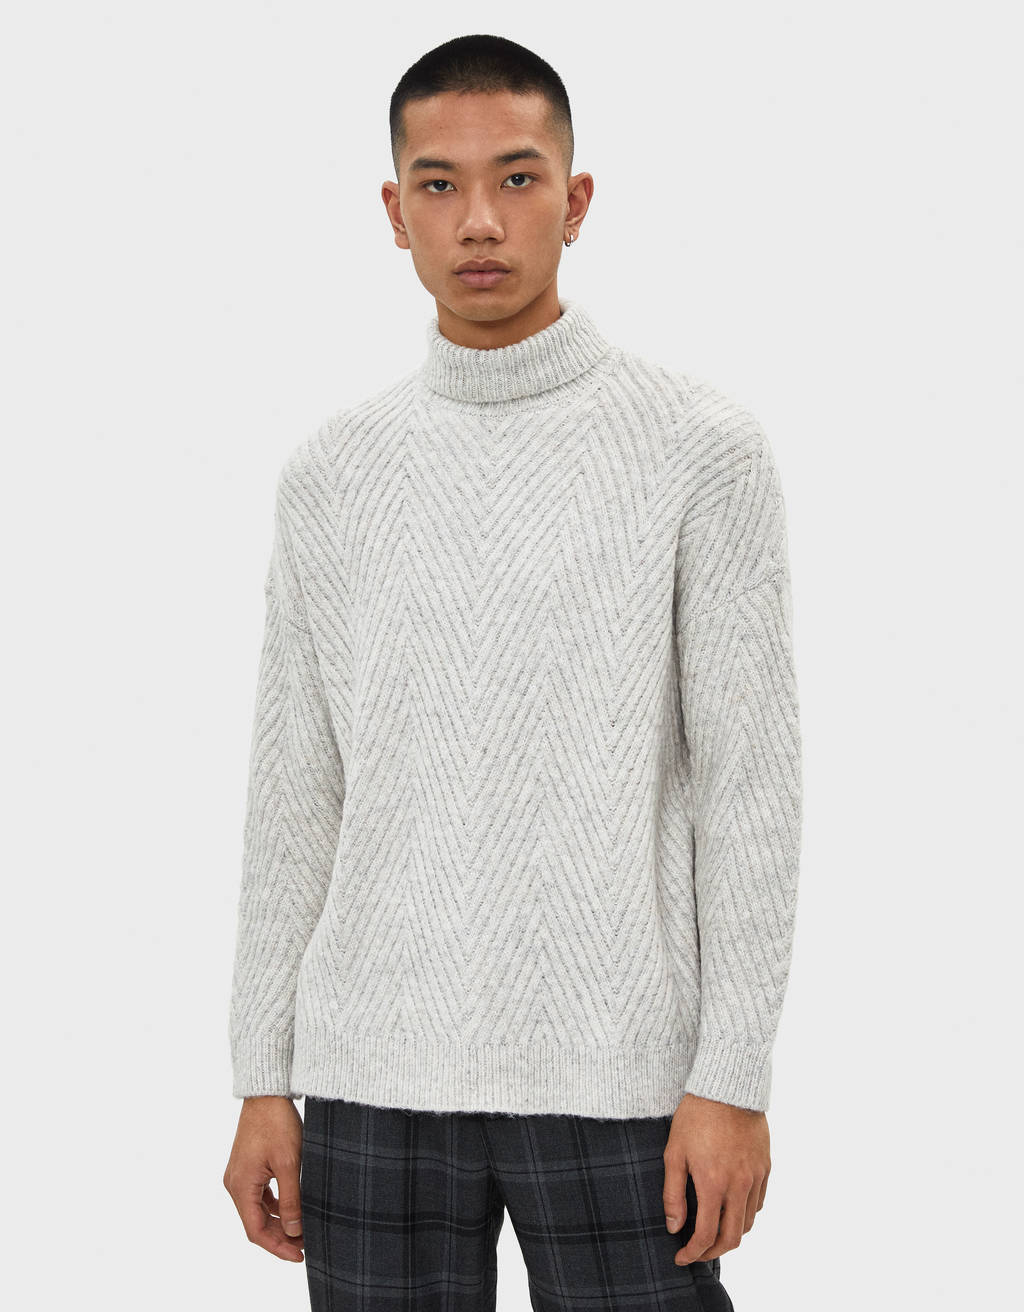 Cable-knit sweater with high neck